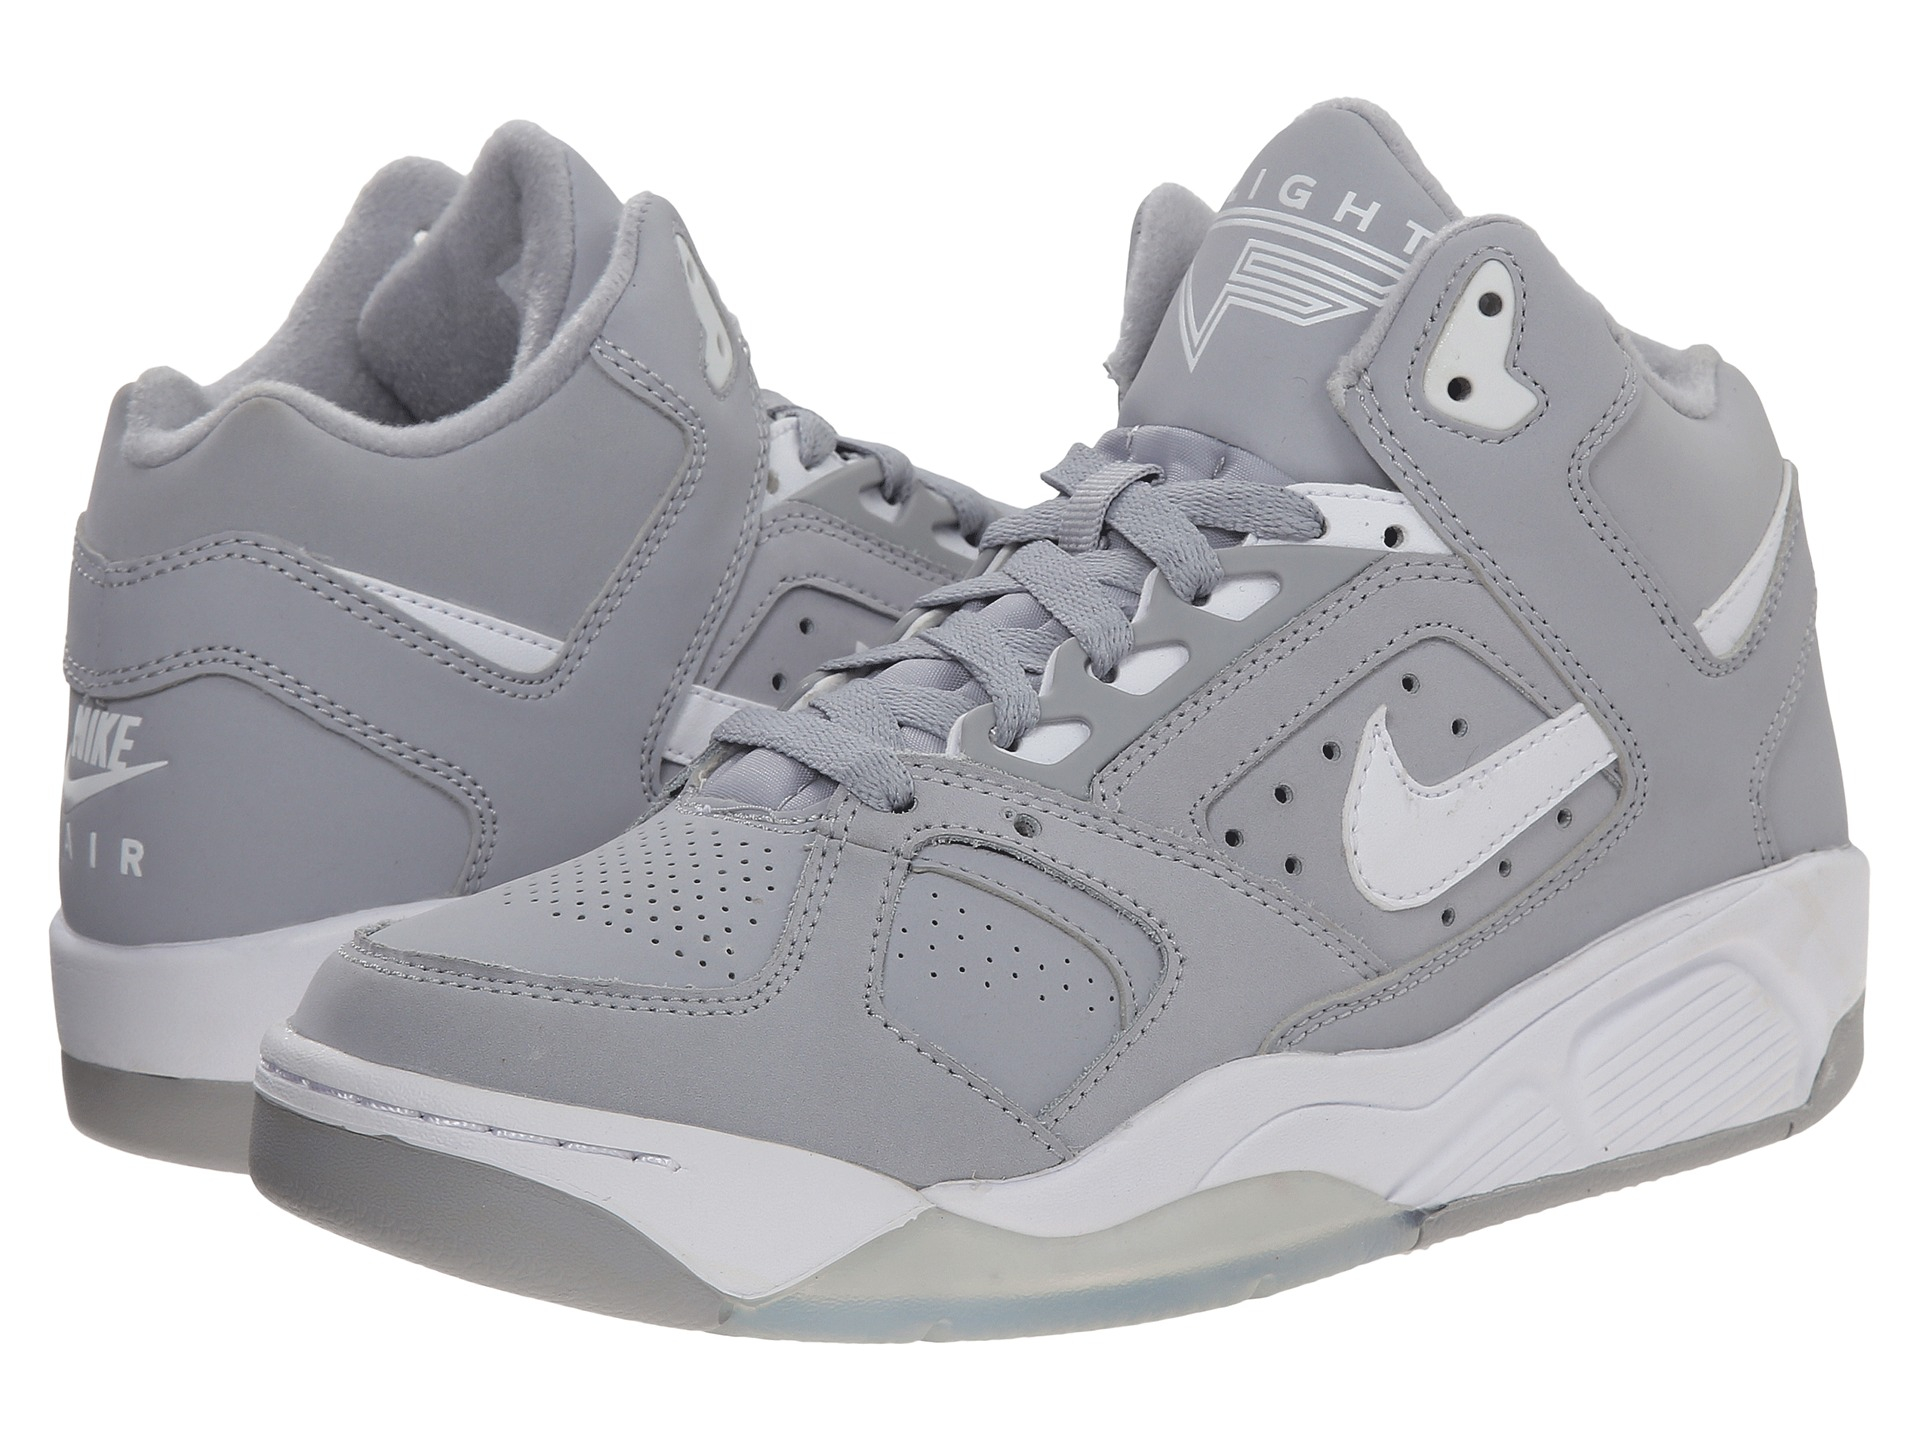 outlet store 21aee b62c0 Lyst - Nike Air Flight Lite Low in Gray for Men